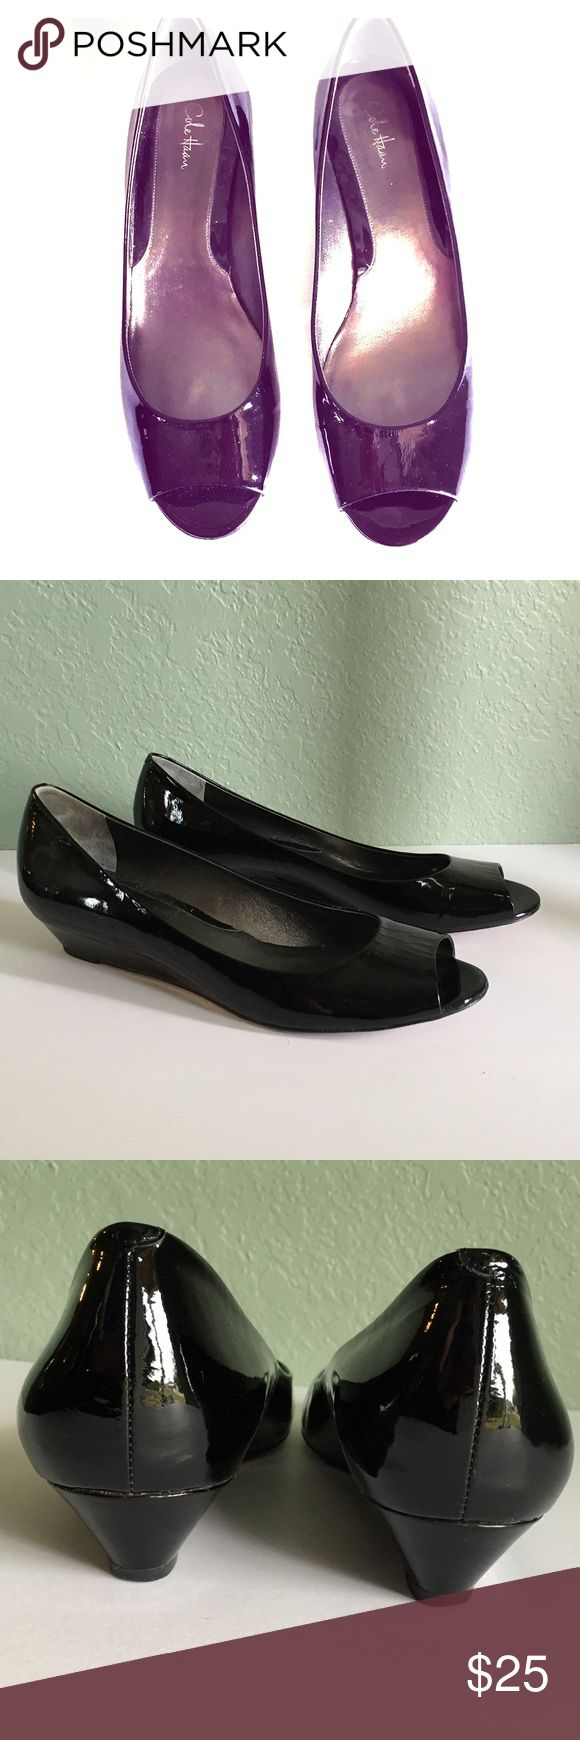 Cole Haan Air Elly Wedges Cole Haan Air Elly Black Peep Toe Low Wedges ~ Made with Nike Air technology for added comfort. ~ Size 11 B Cole Haan Shoes Wedges